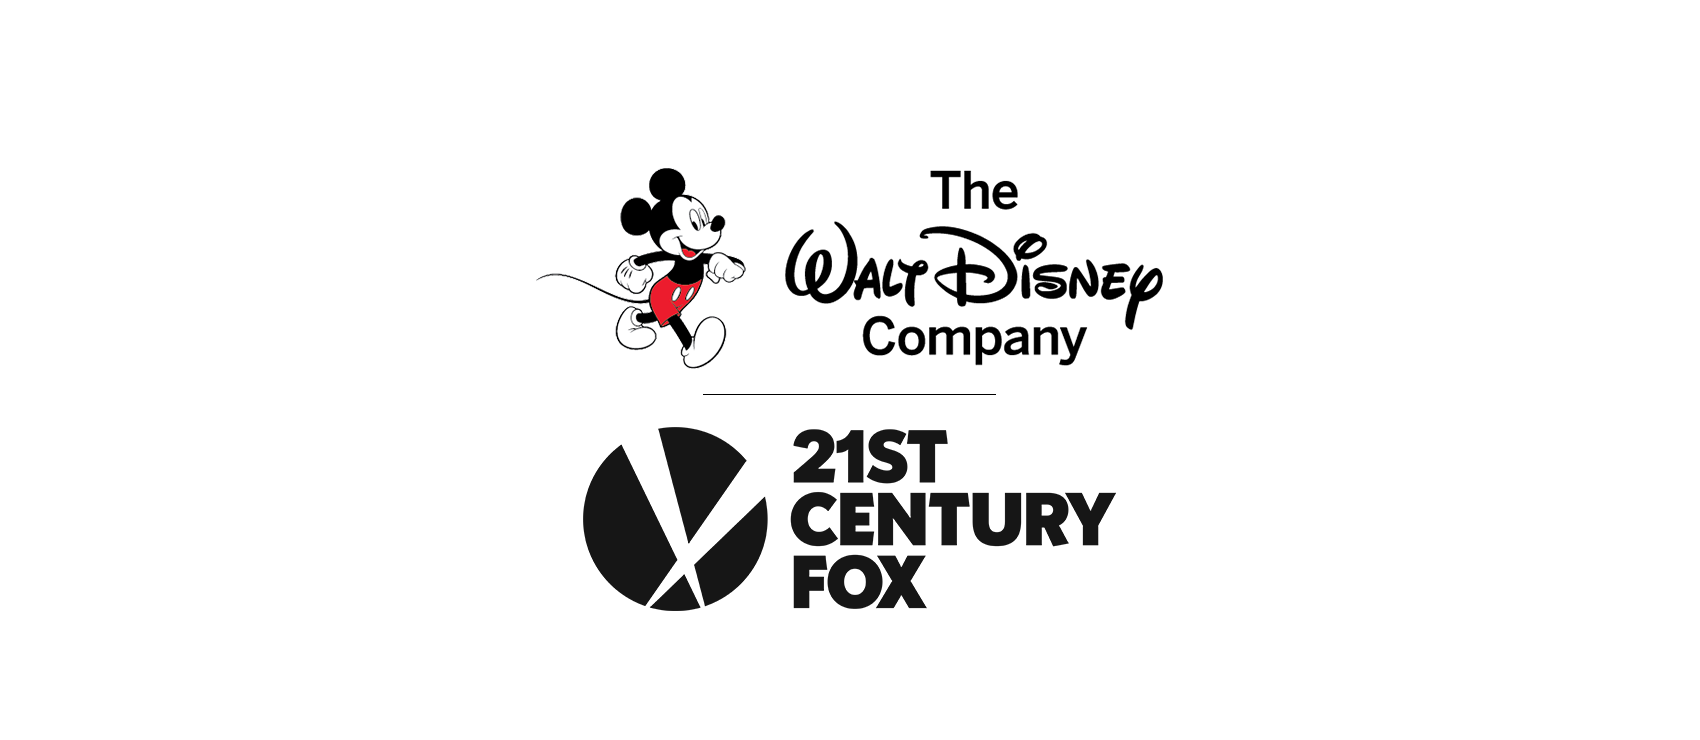 The last Disney-Fox merger barrier was cleared As Mexico Gives OK